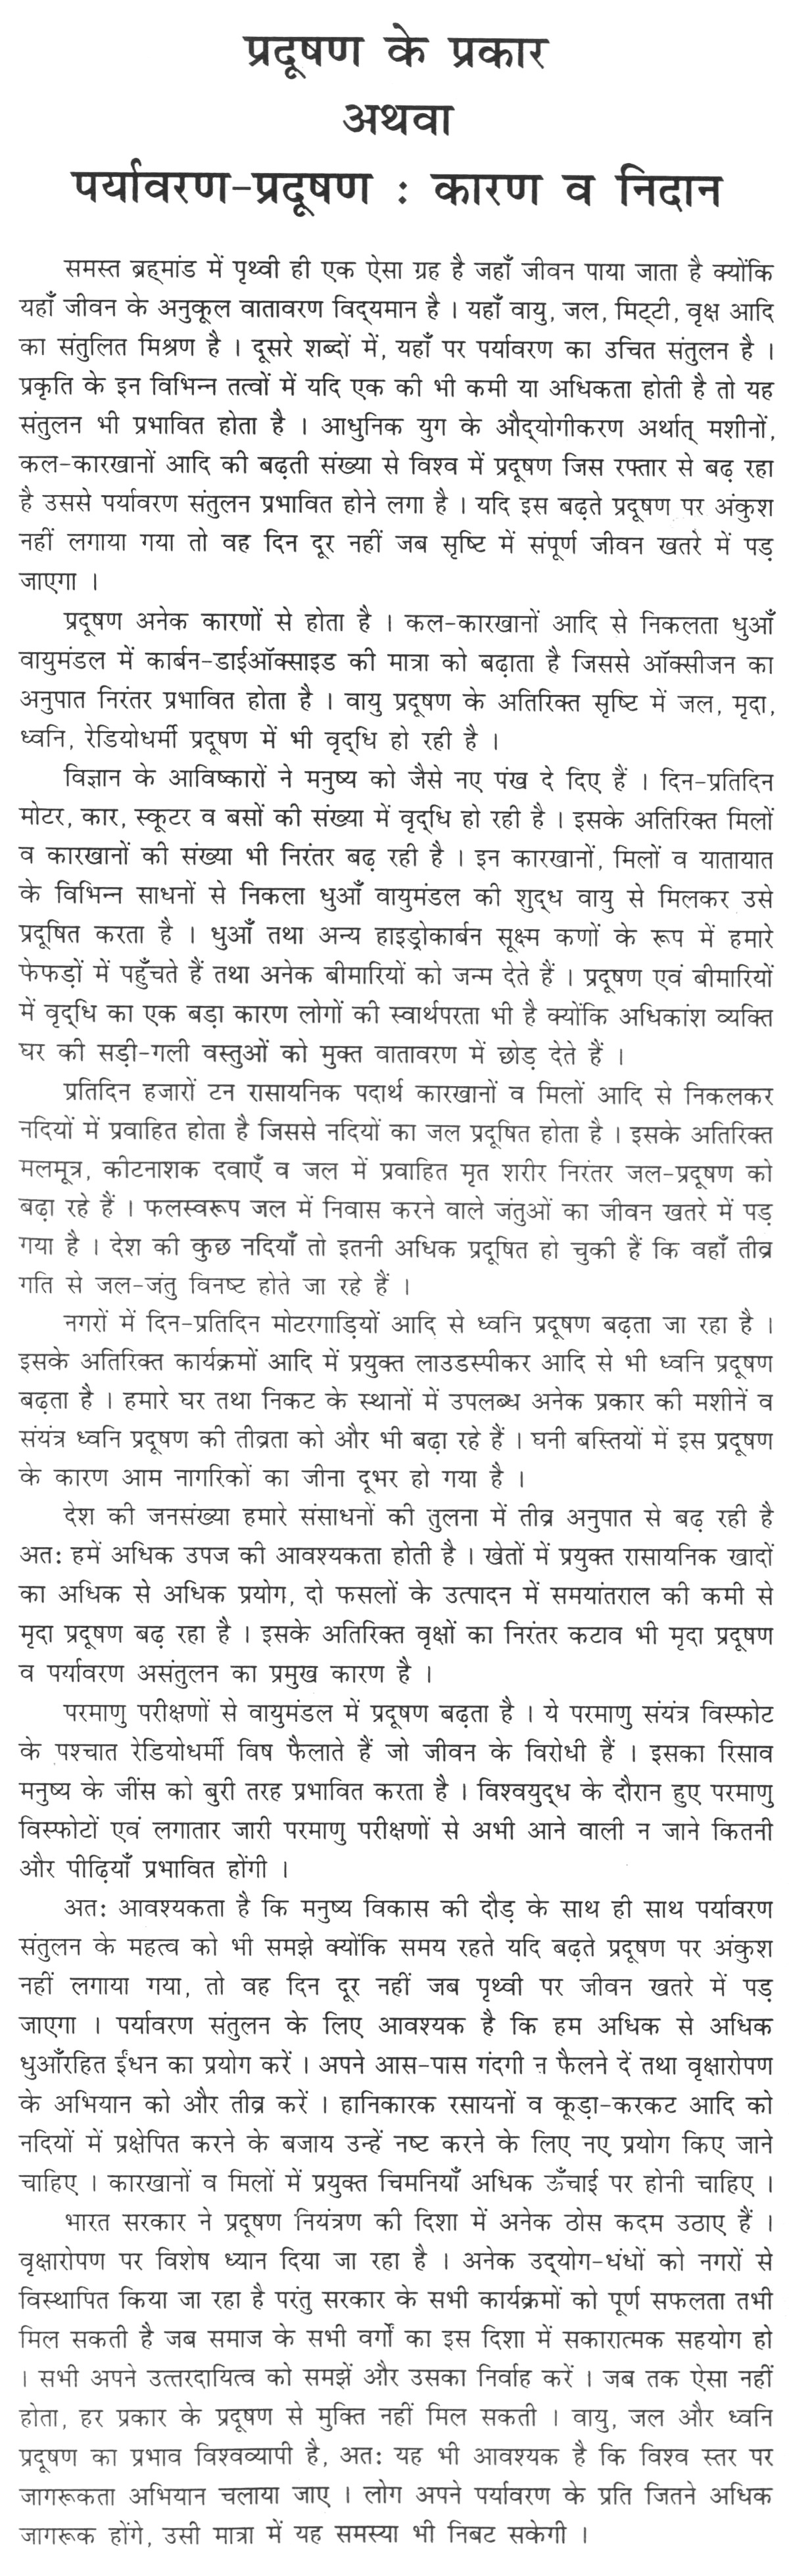 014 Good Habits Essay In Hindi Exceptional Food Habit Full